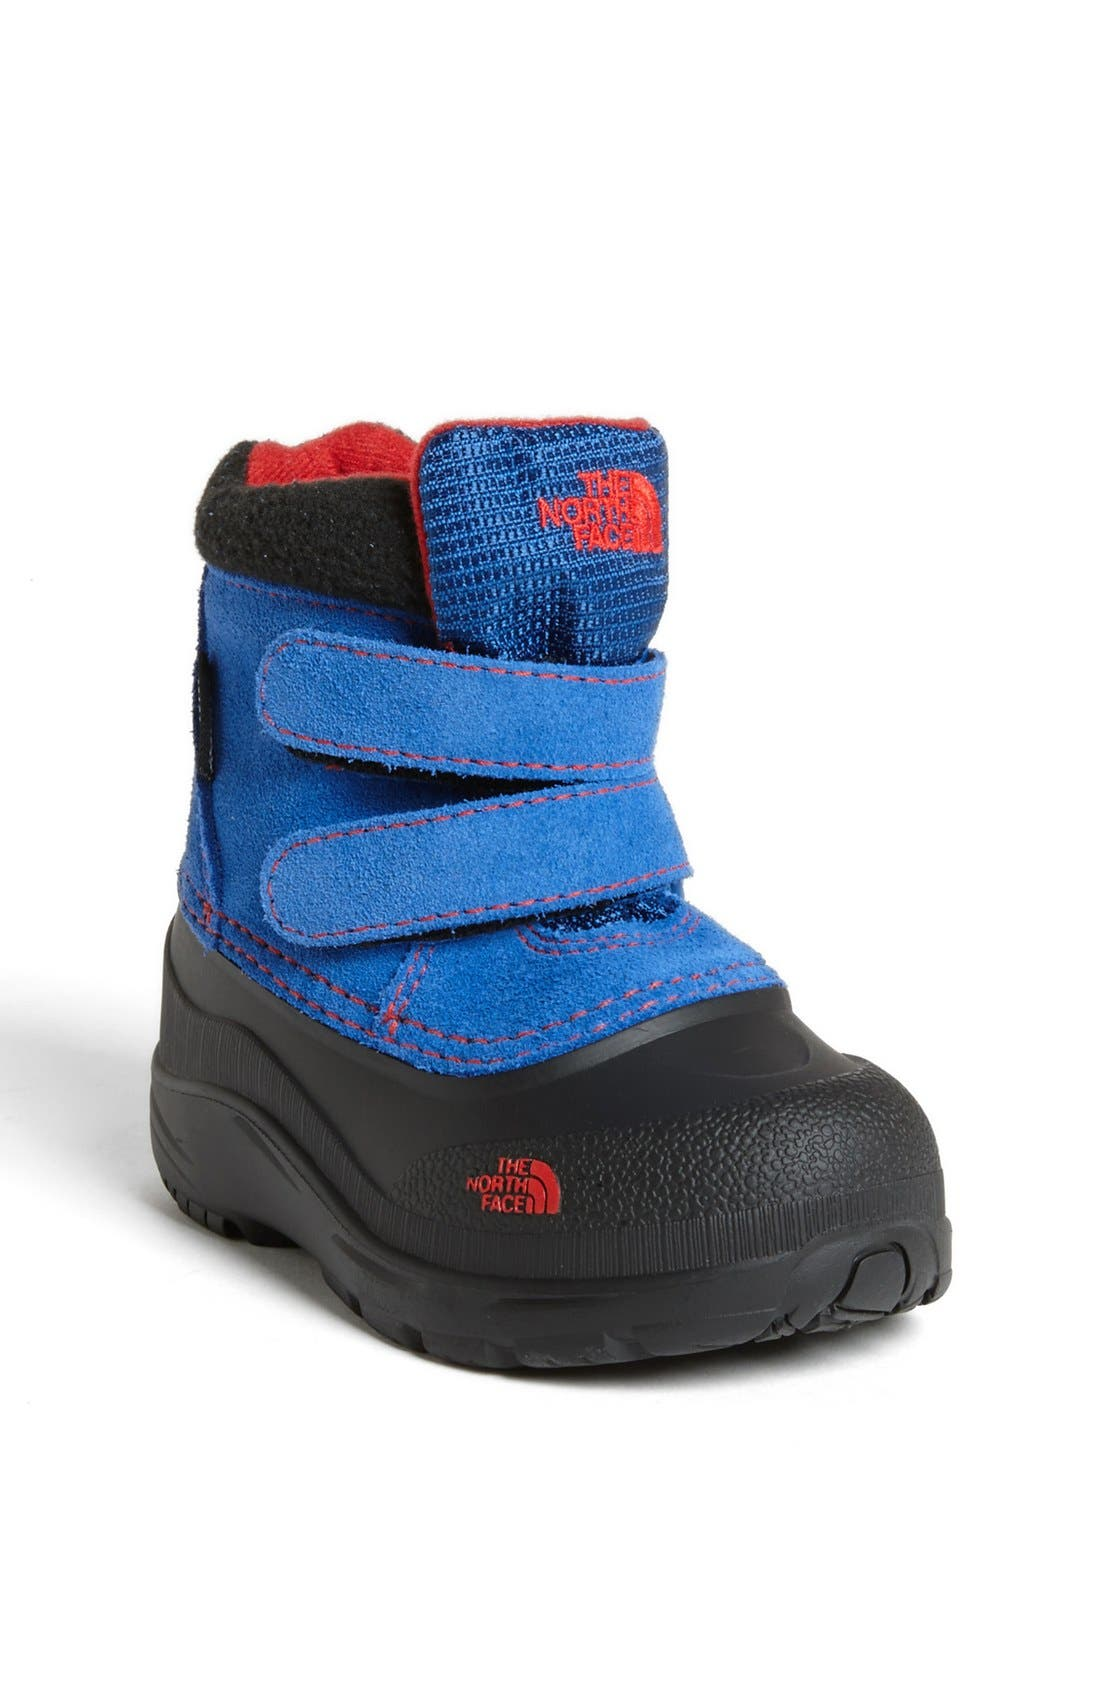 Main Image - The North Face 'Chilkat' Waterproof Snow Boot (Walker & Toddler)